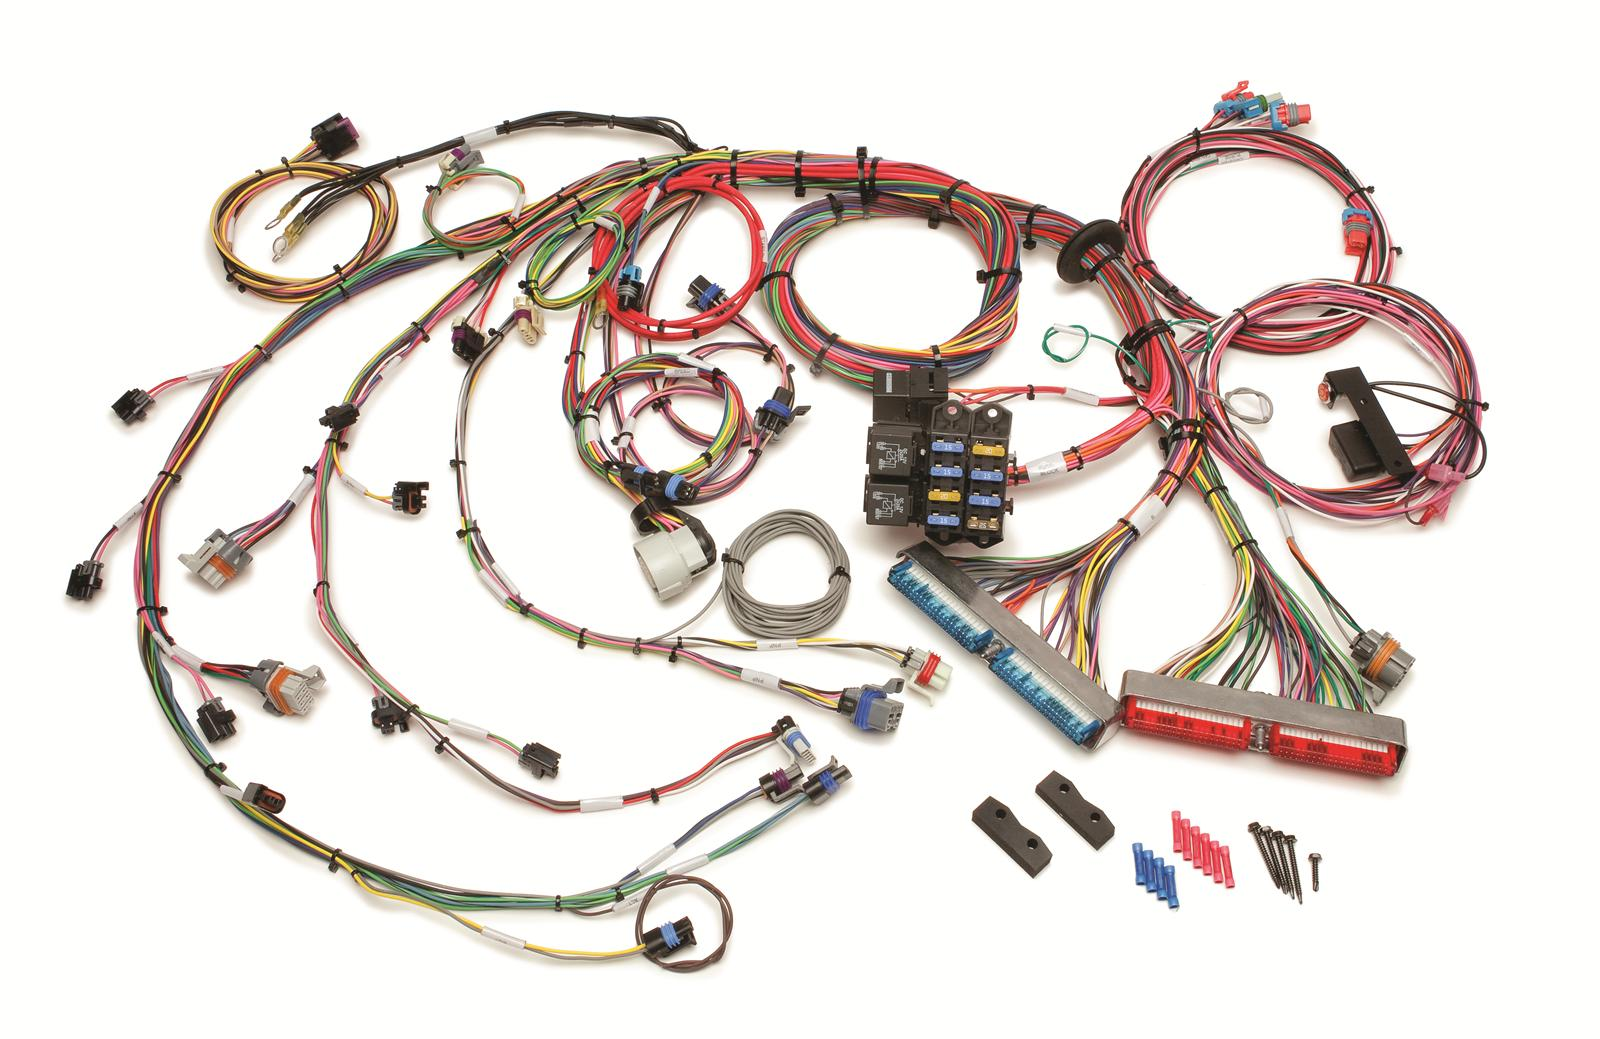 chevy 5 3 wiring diagram painless wiring 60218 wiring harness gen iii vortec chevy ... 5 3 wiring harness #11